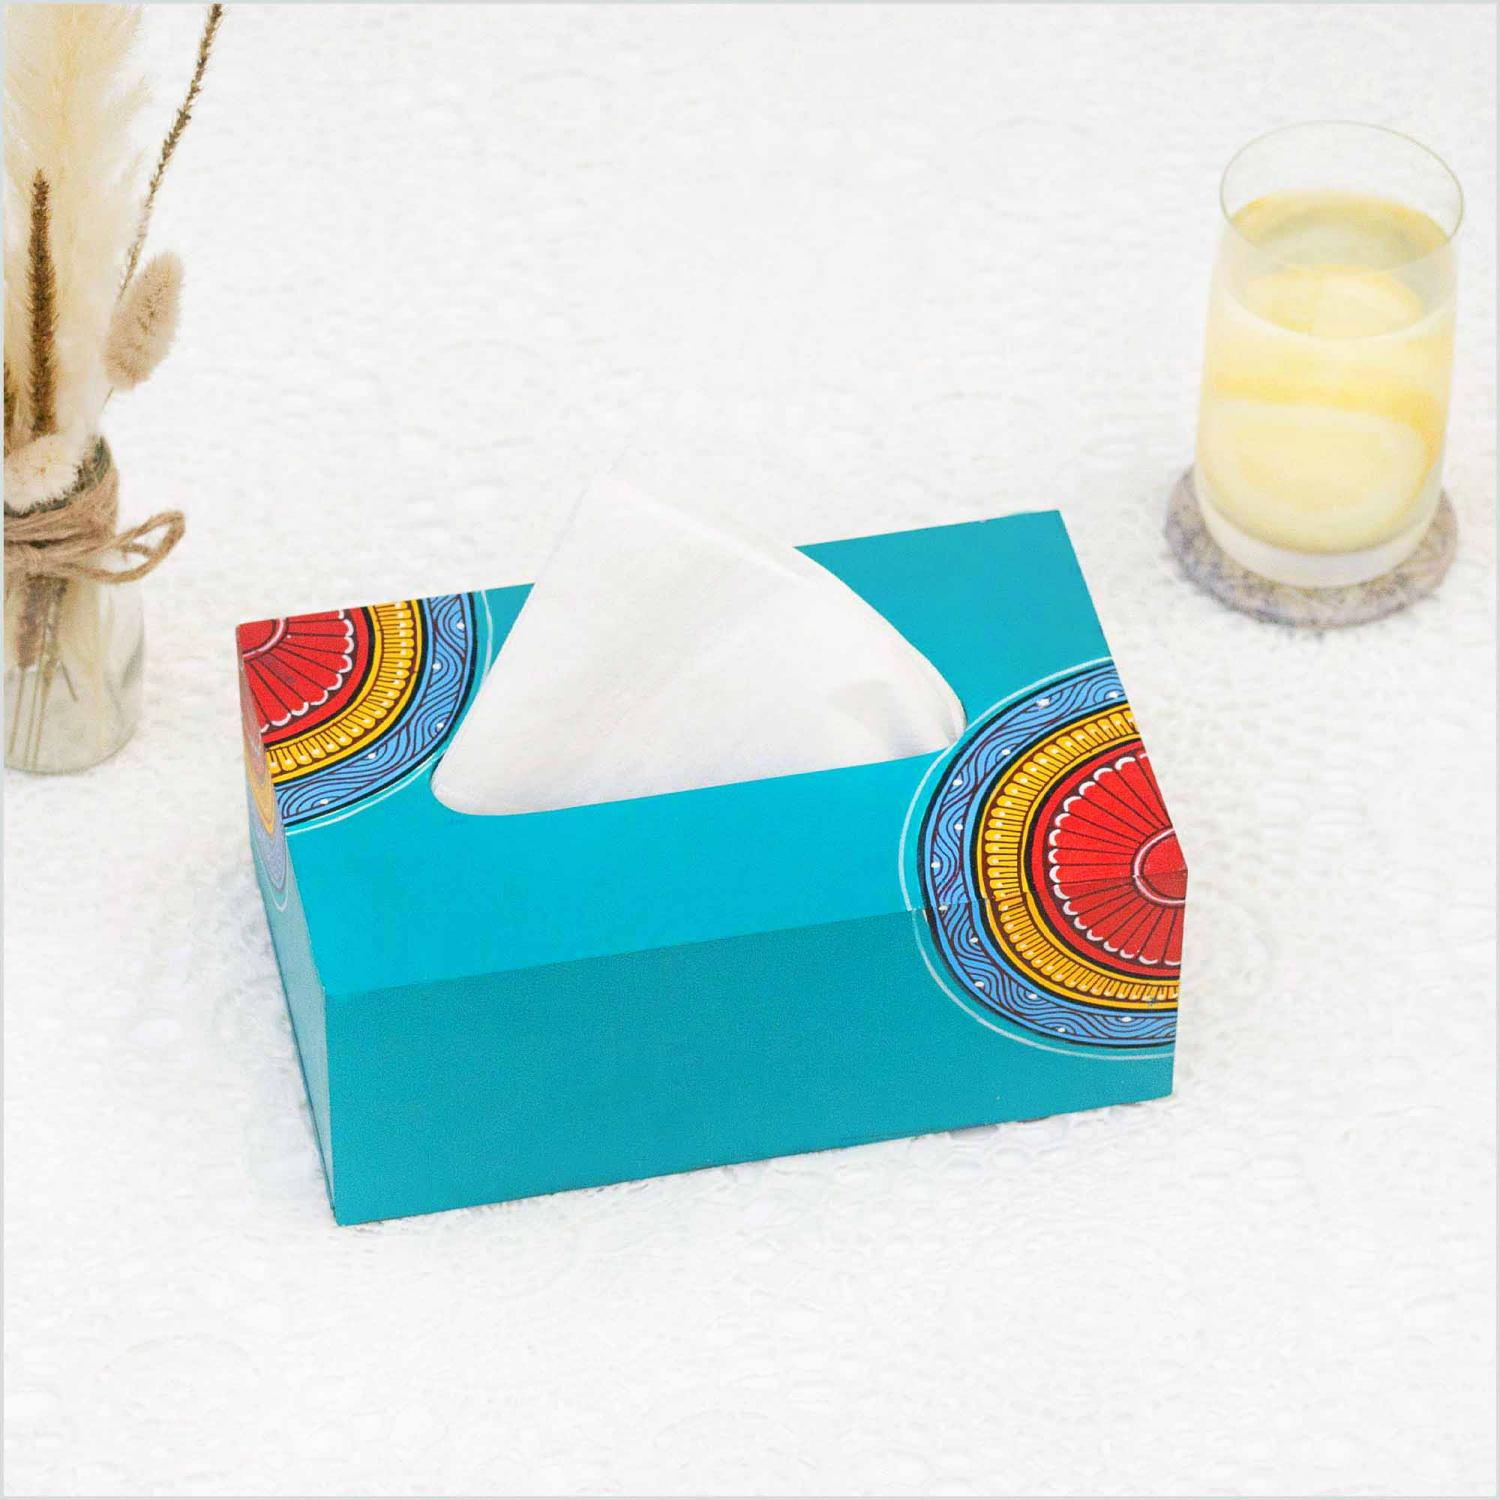 Blue napkin holder with yellow, red and blue motifs holding white napkins and standing on a white surface with a vase with dried oats, a glass of lemonade and a white wall in the background